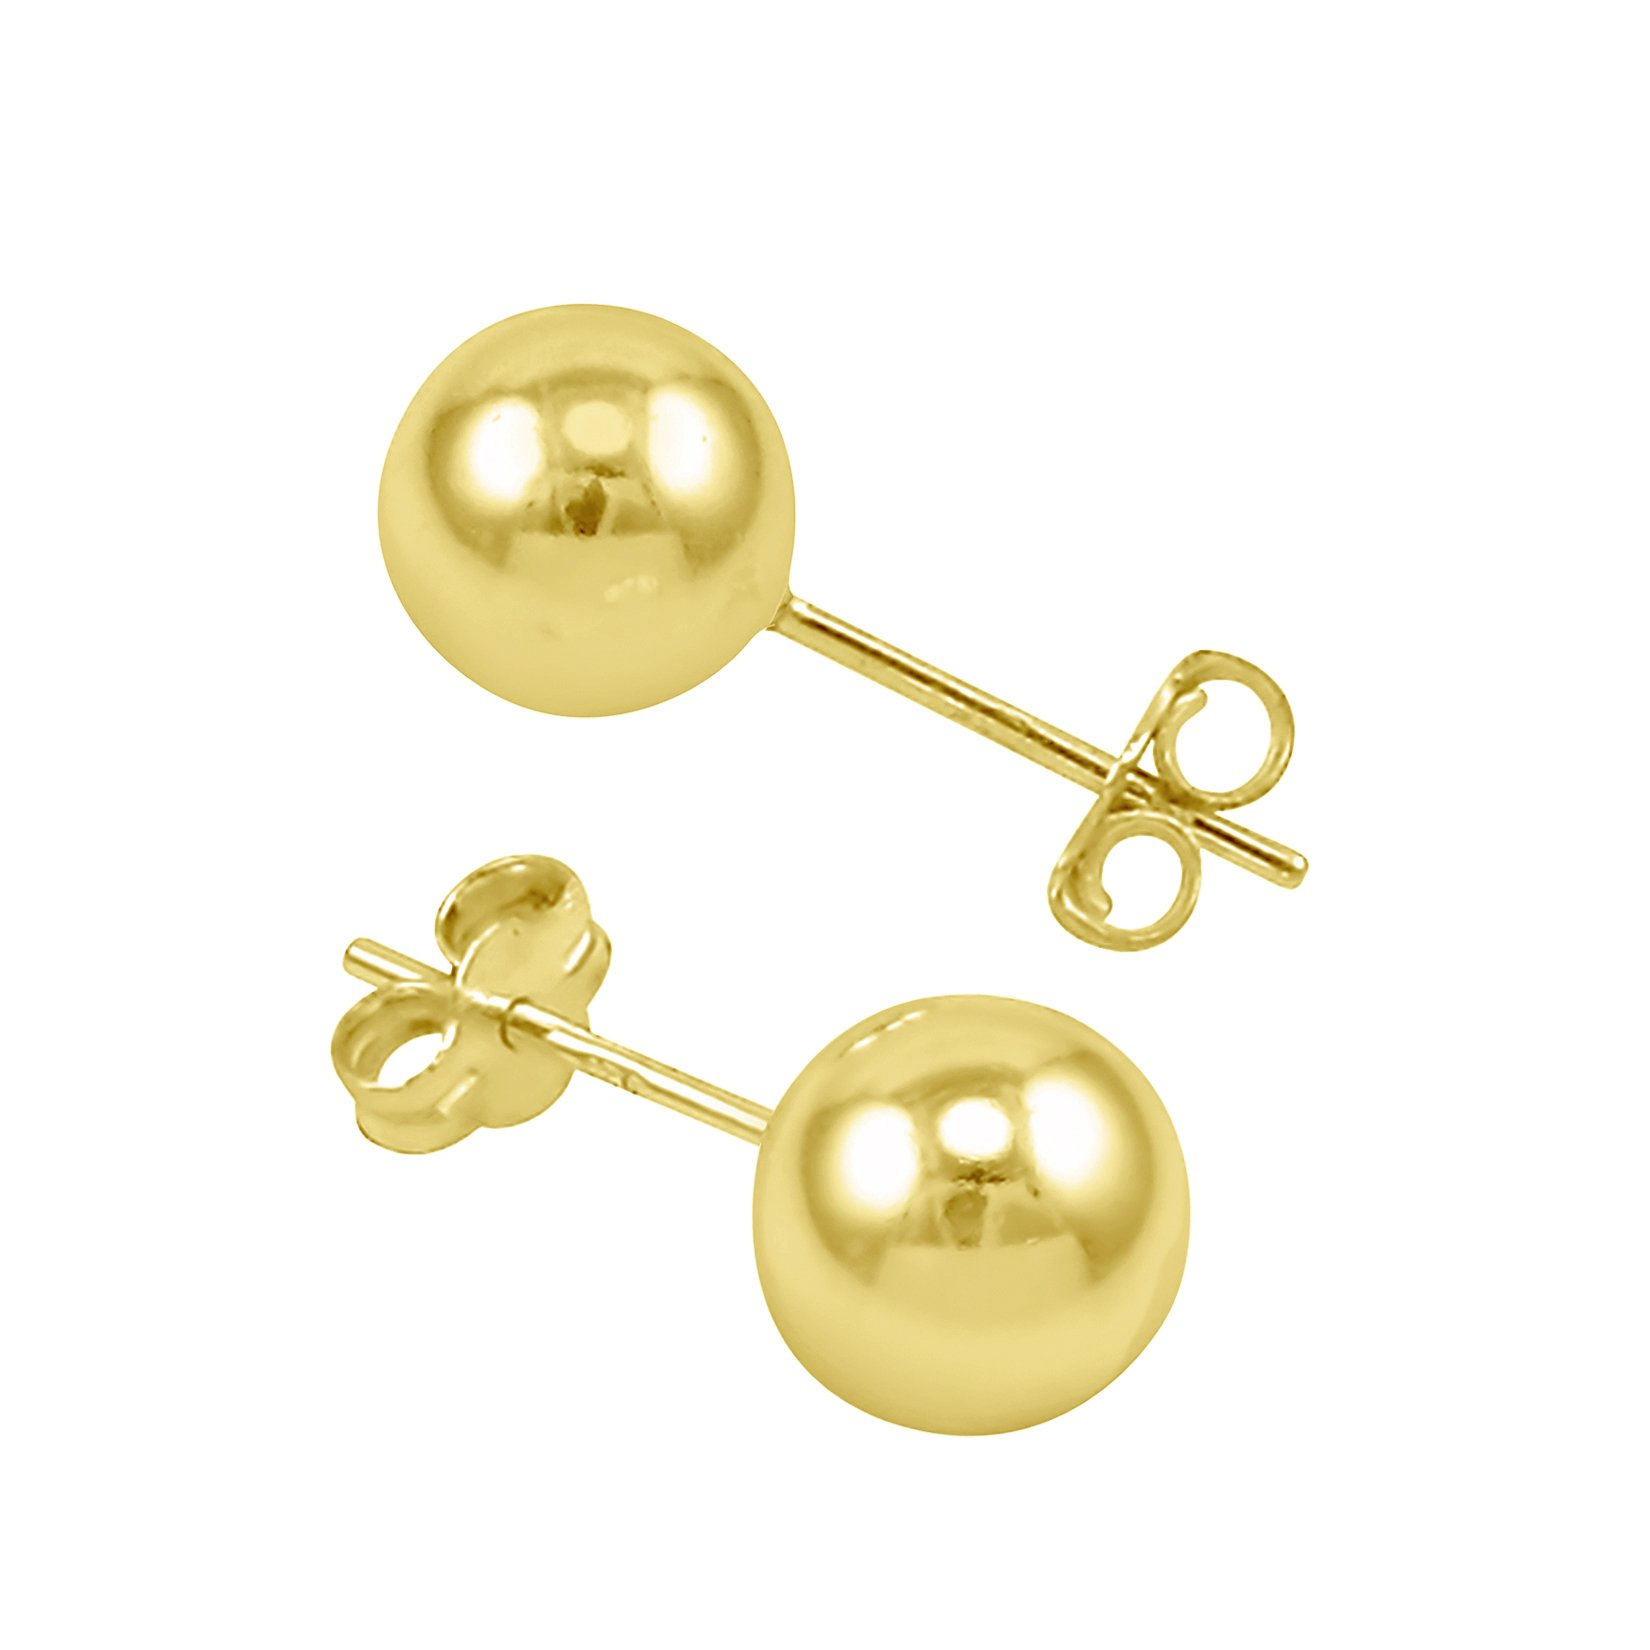 14k High Polished Yellow Gold Ball Stud Earrings With Butterfly & Free Box - 8mm